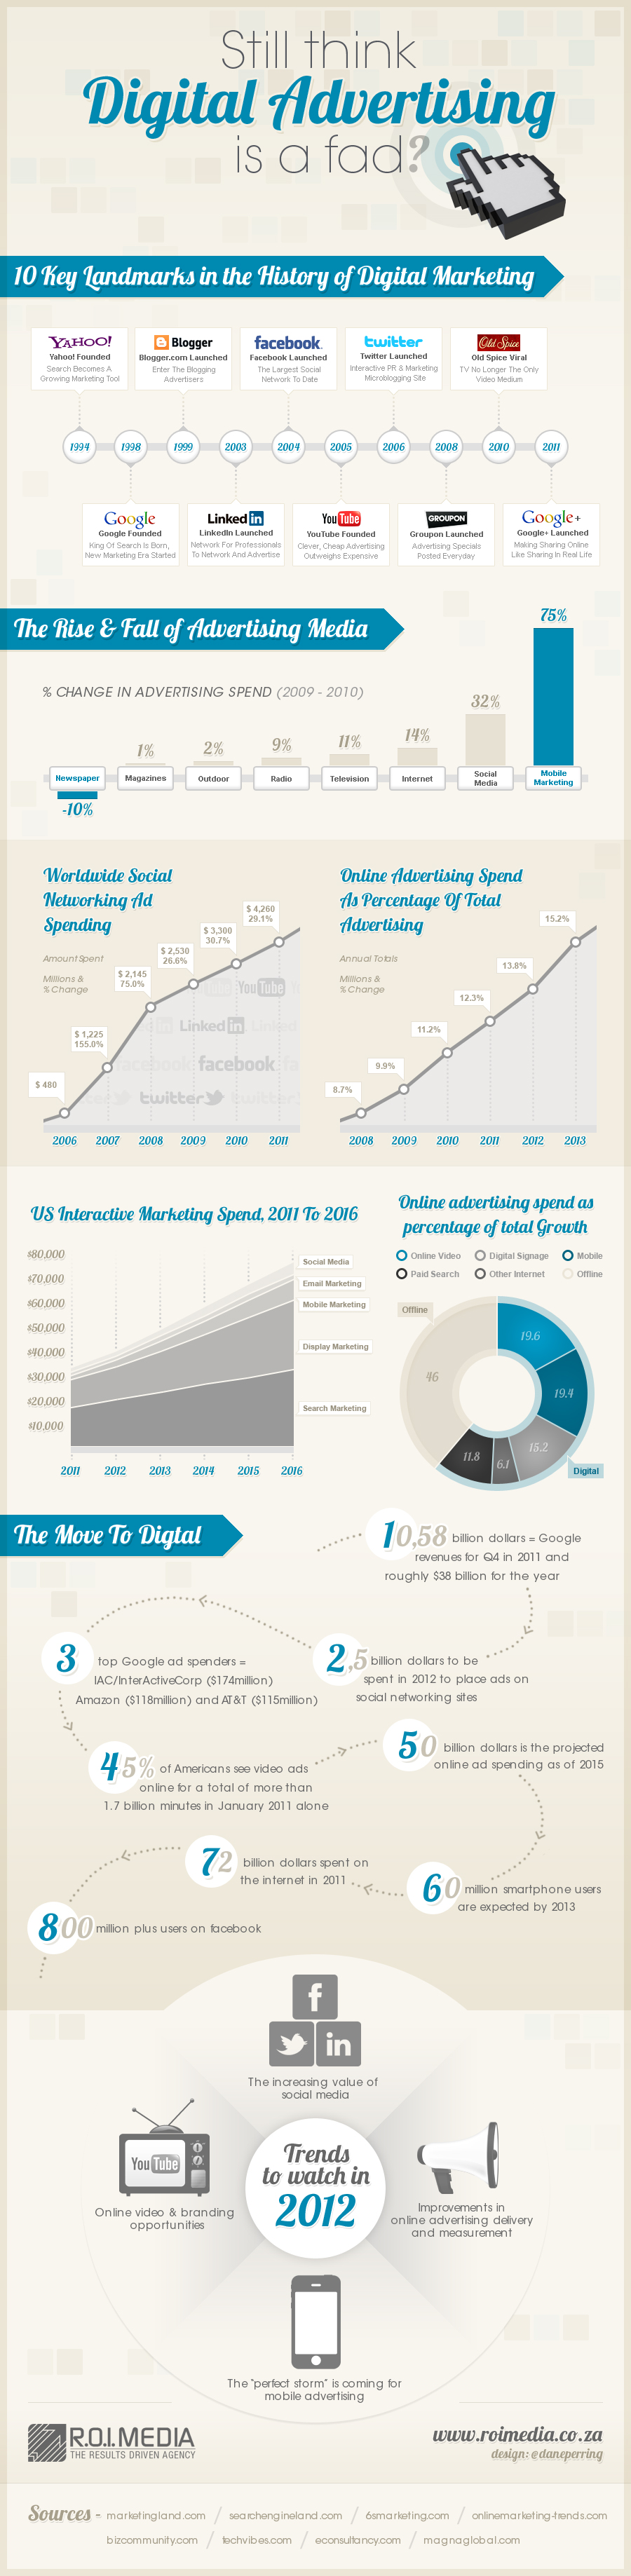 Still think digital advertising is a fad